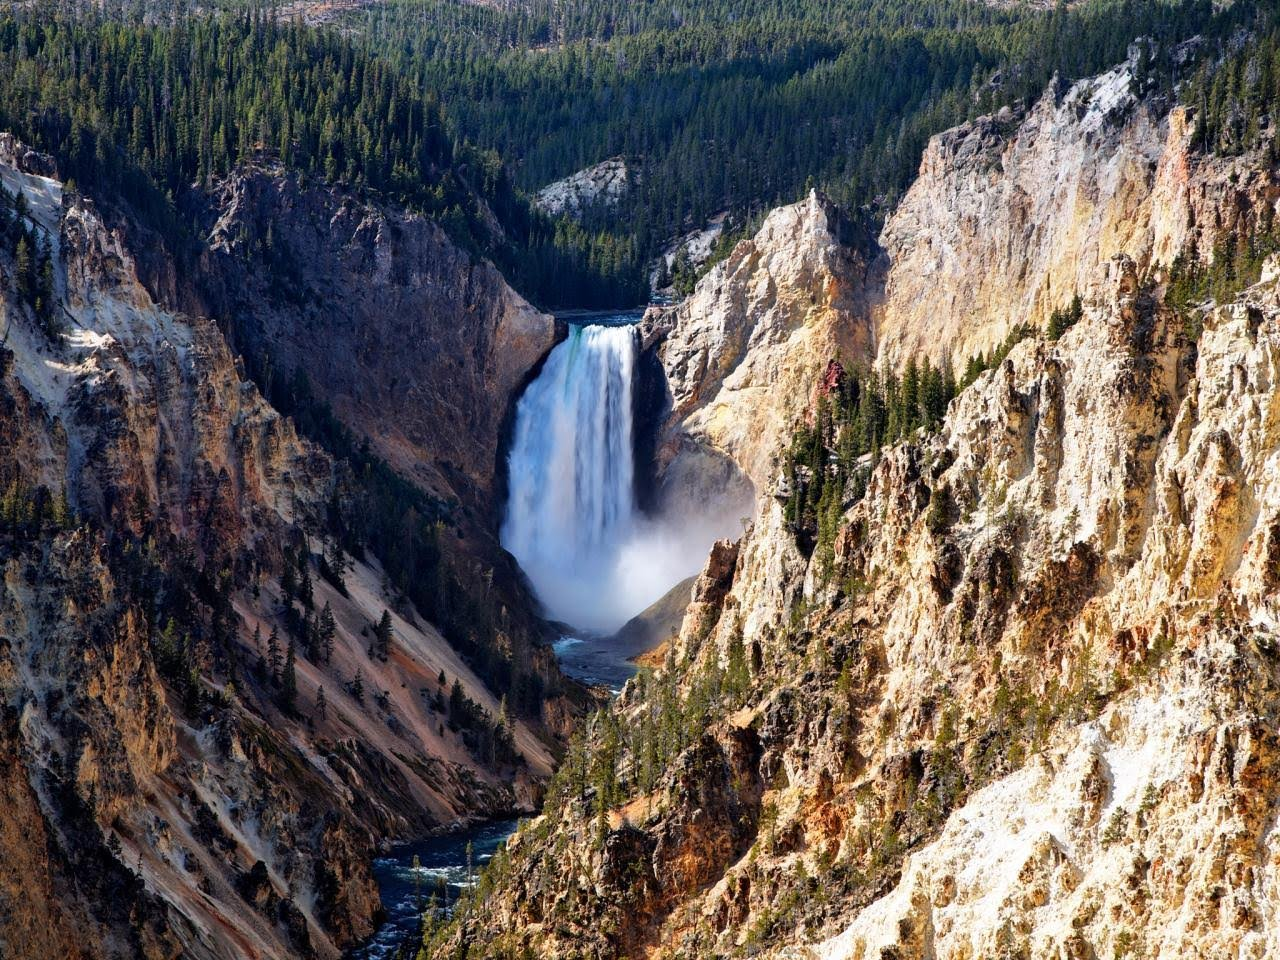 Grand Canyon Falls at Yellowstone National Park, Wyo.